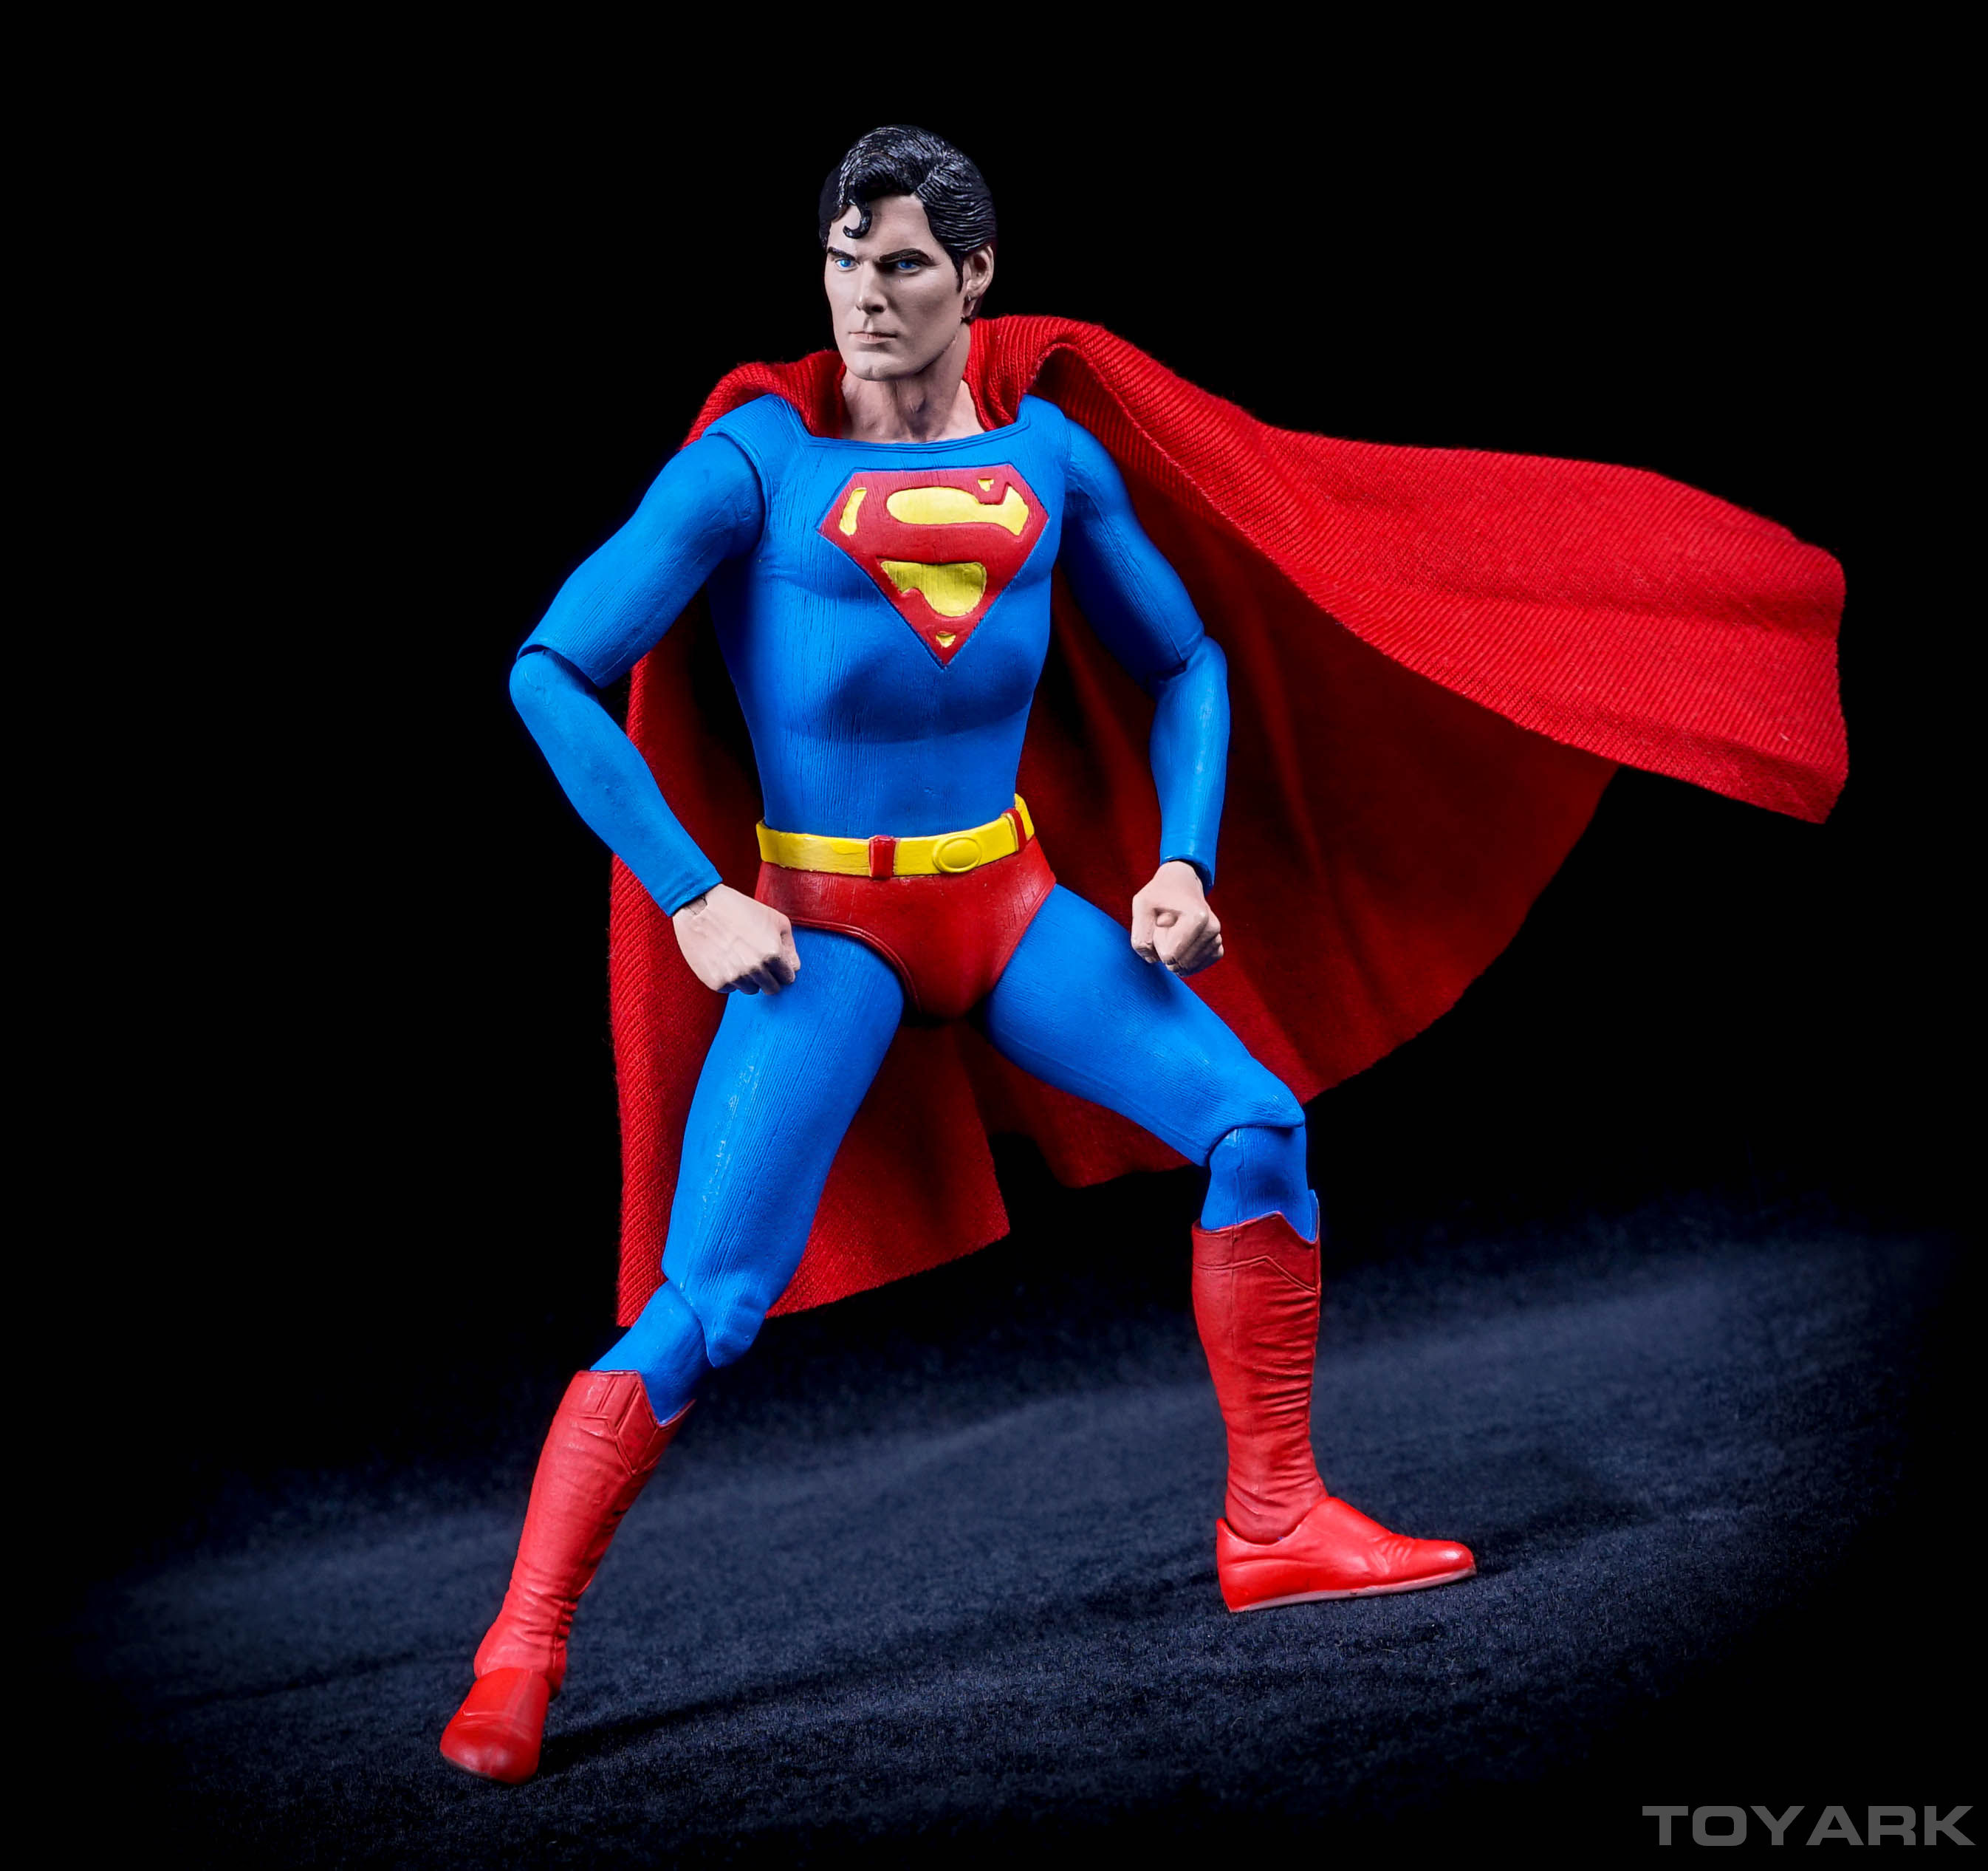 http://news.toyark.com/wp-content/uploads/sites/4/2015/11/NECA-7-Inch-Superman-041.jpg